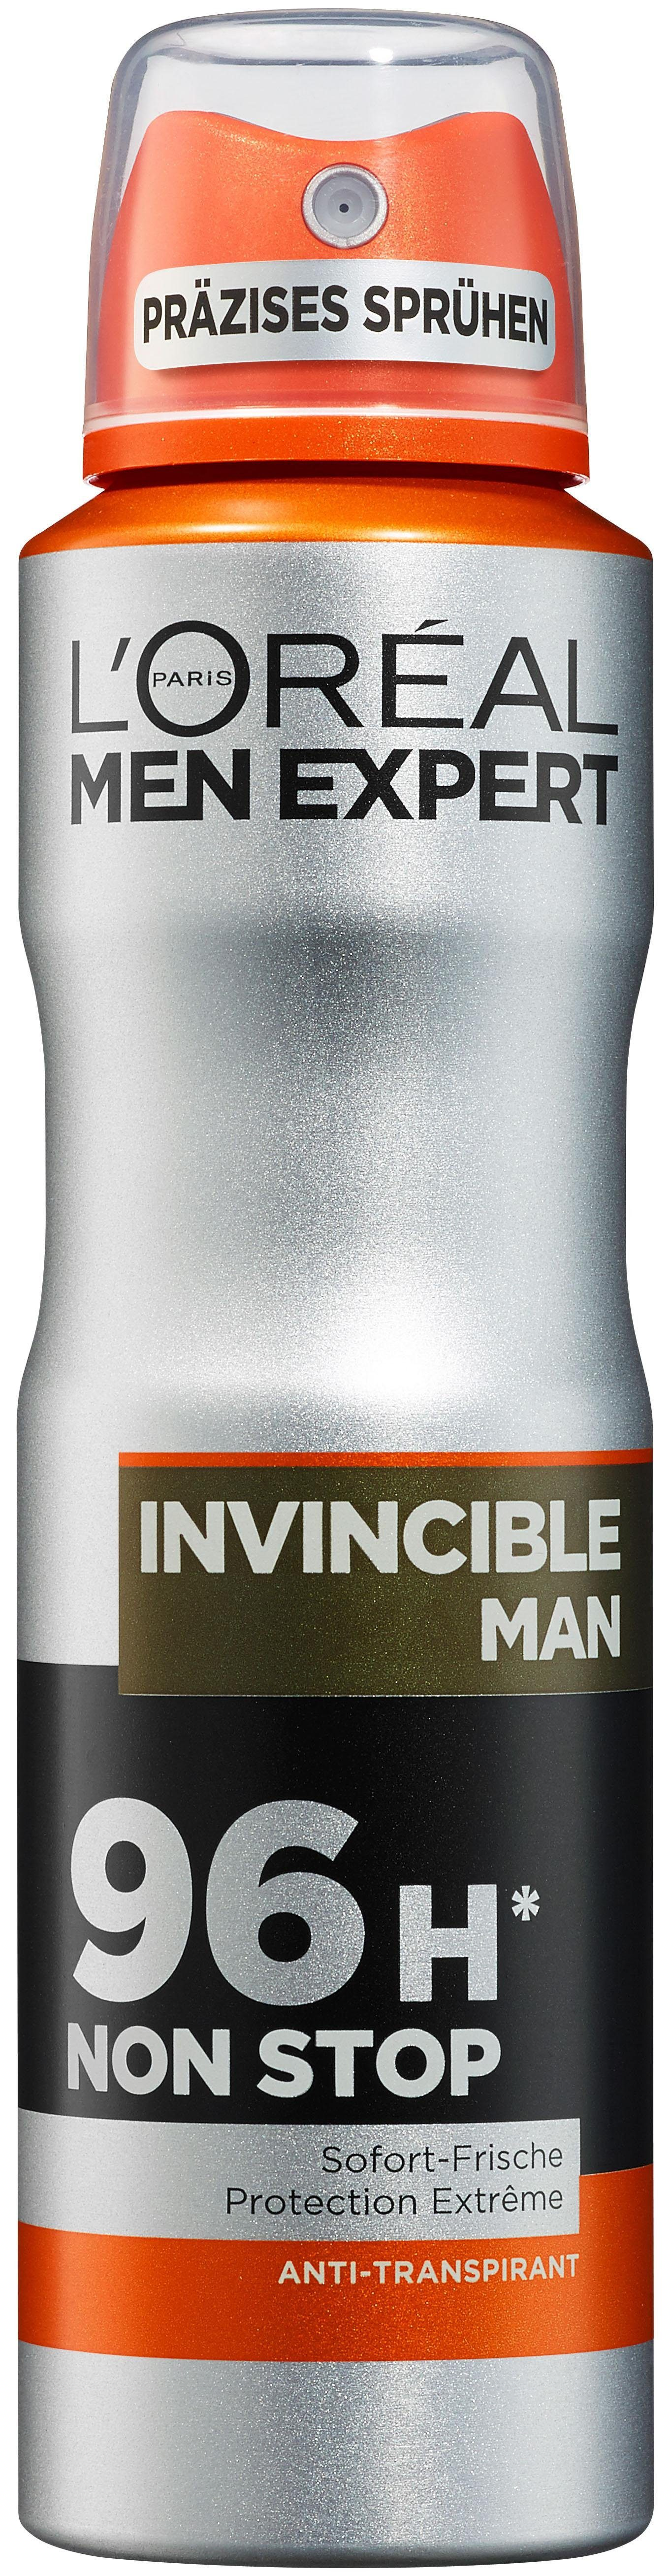 L'Oréal Paris Men Expert, »Invincible Man«, Deo-Spray